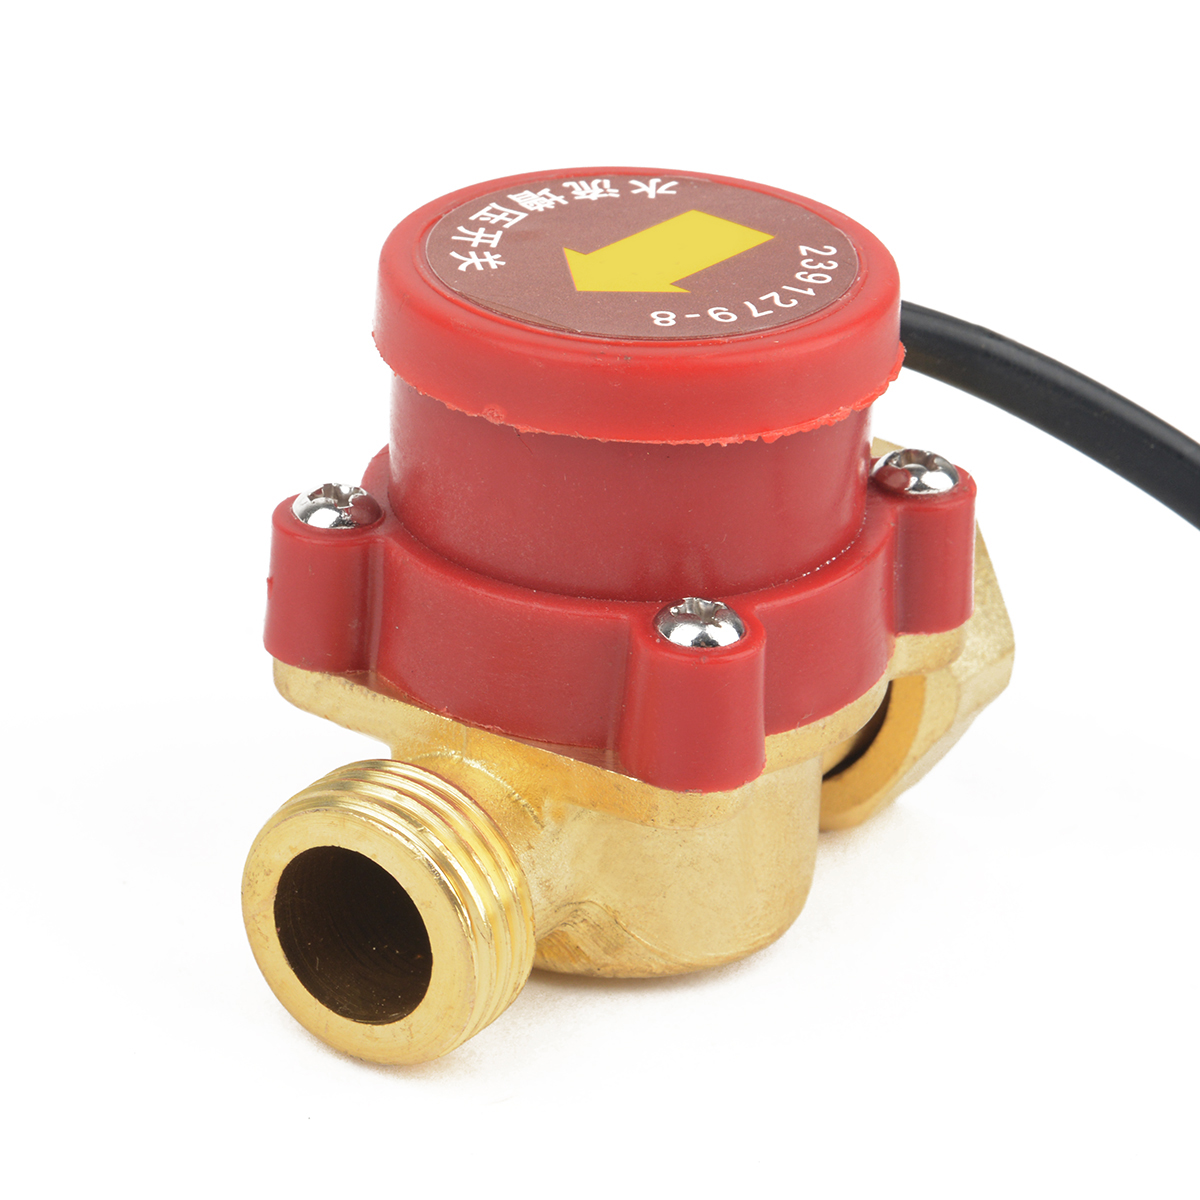 Mayitr 1pc Practical Male Thread Connector Circulation Pump Water Flow Sensor Switch 220V 120W